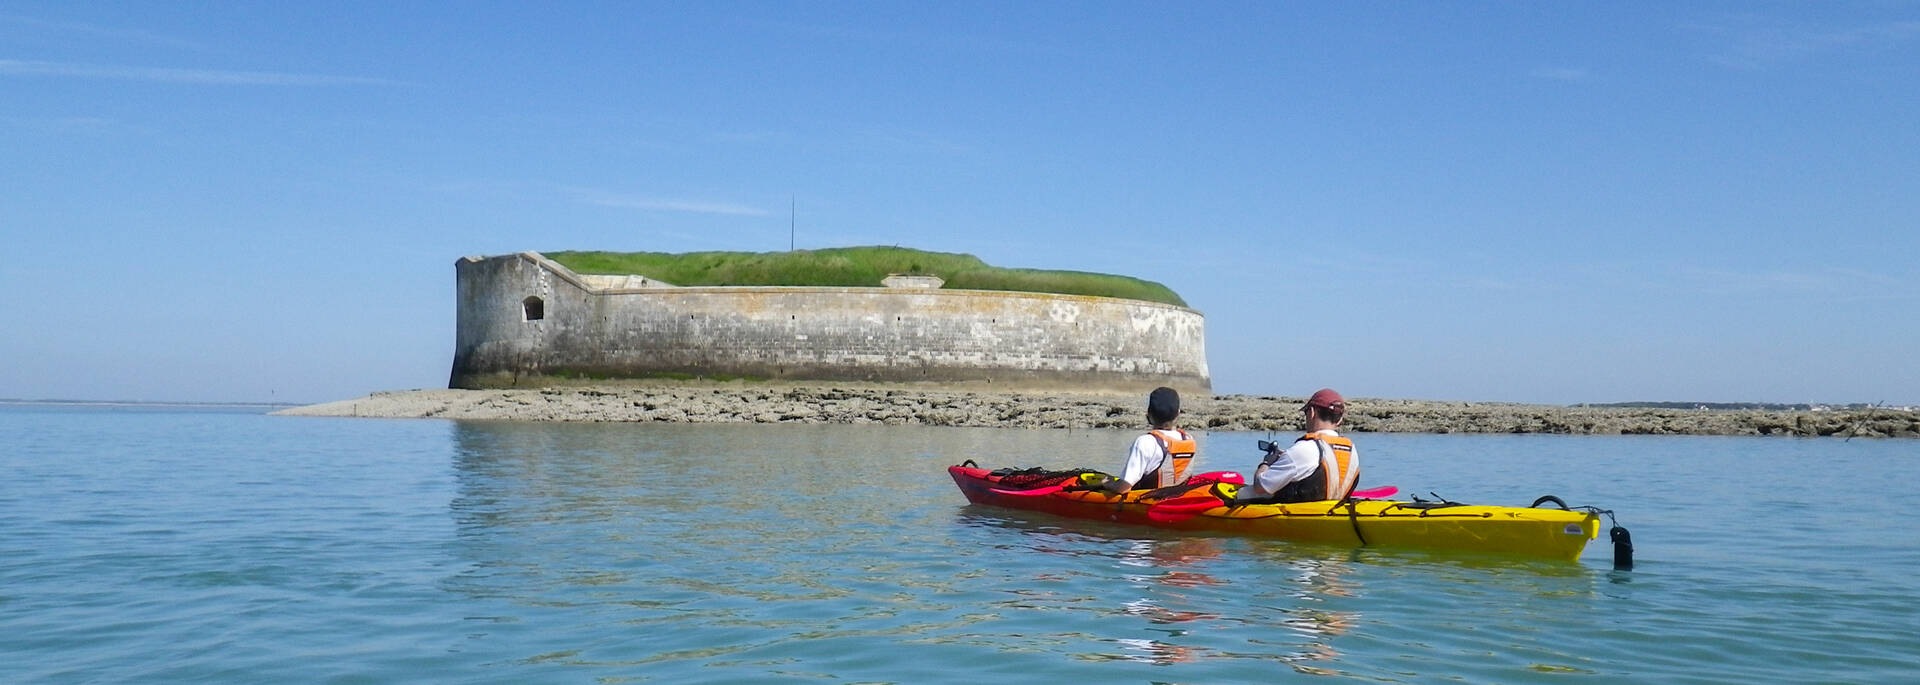 Outing on the sea near the Fort Enet in Fouras-les-Bains -© Antioche Kayak